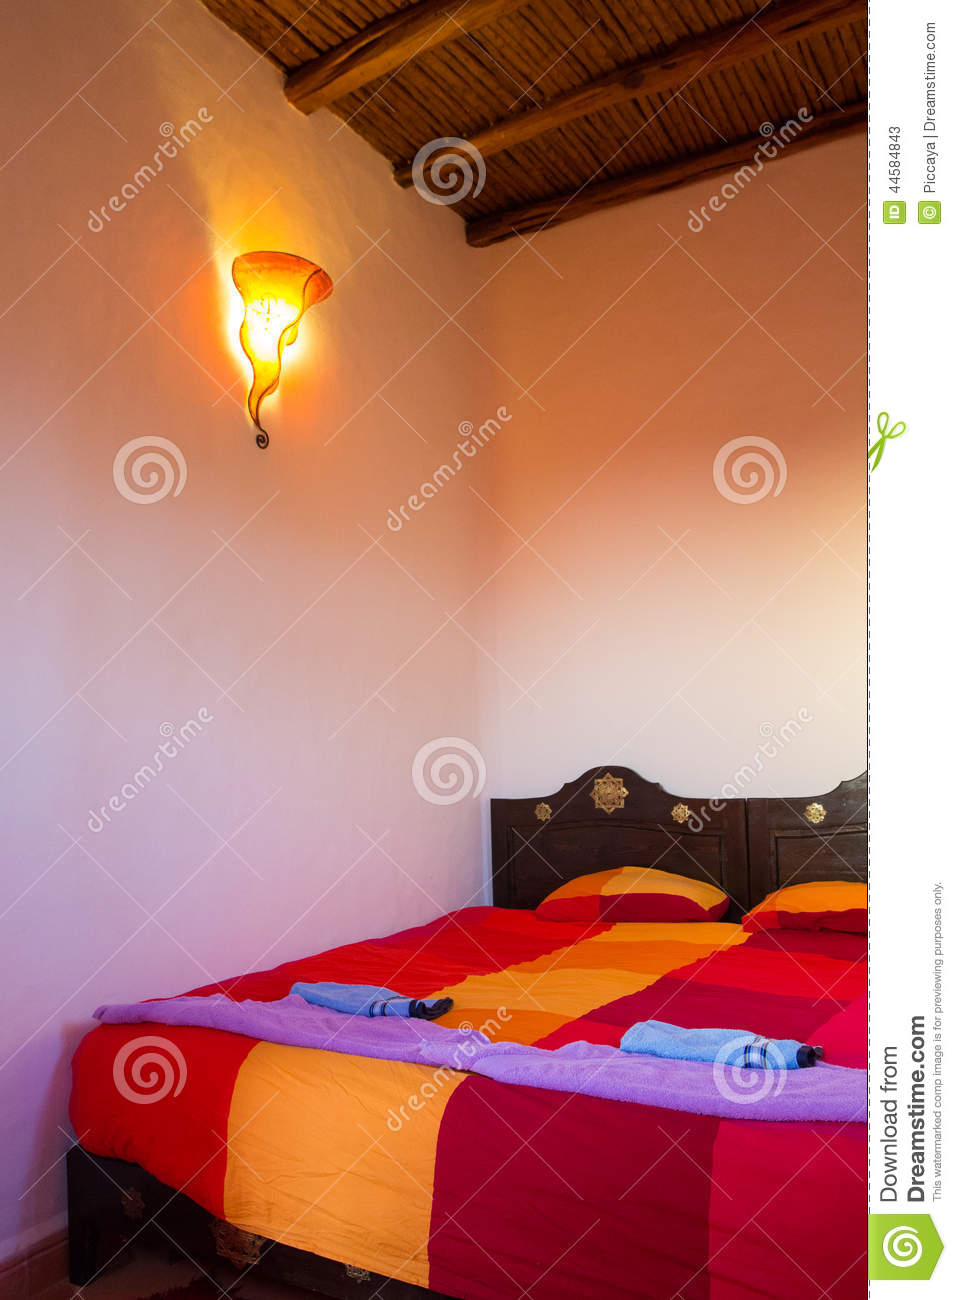 Chambre a coucher traditionnelle marocaine for Photo chambre a coucher marocaine